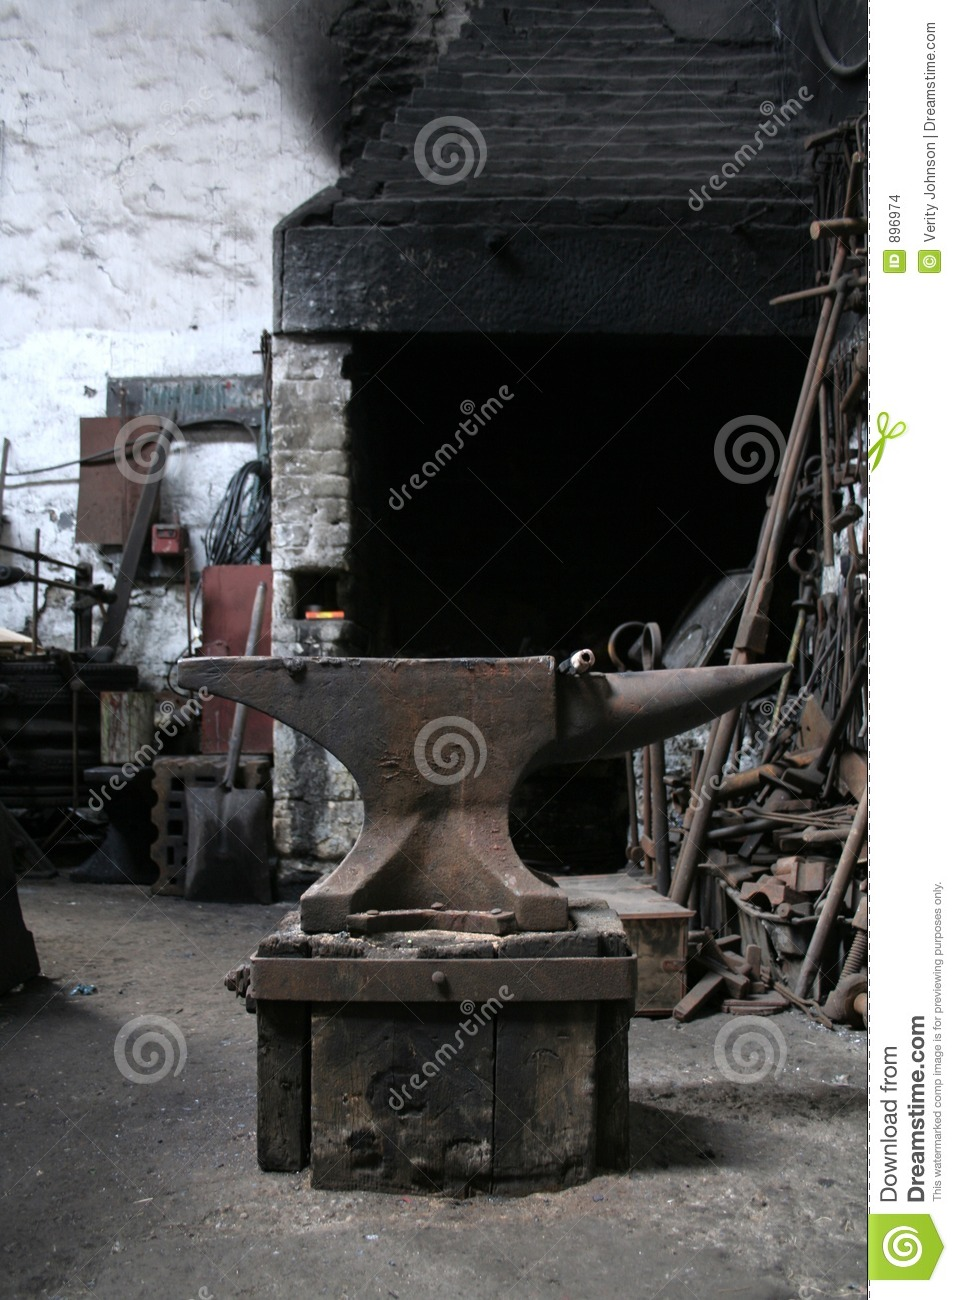 Forge, kowal s